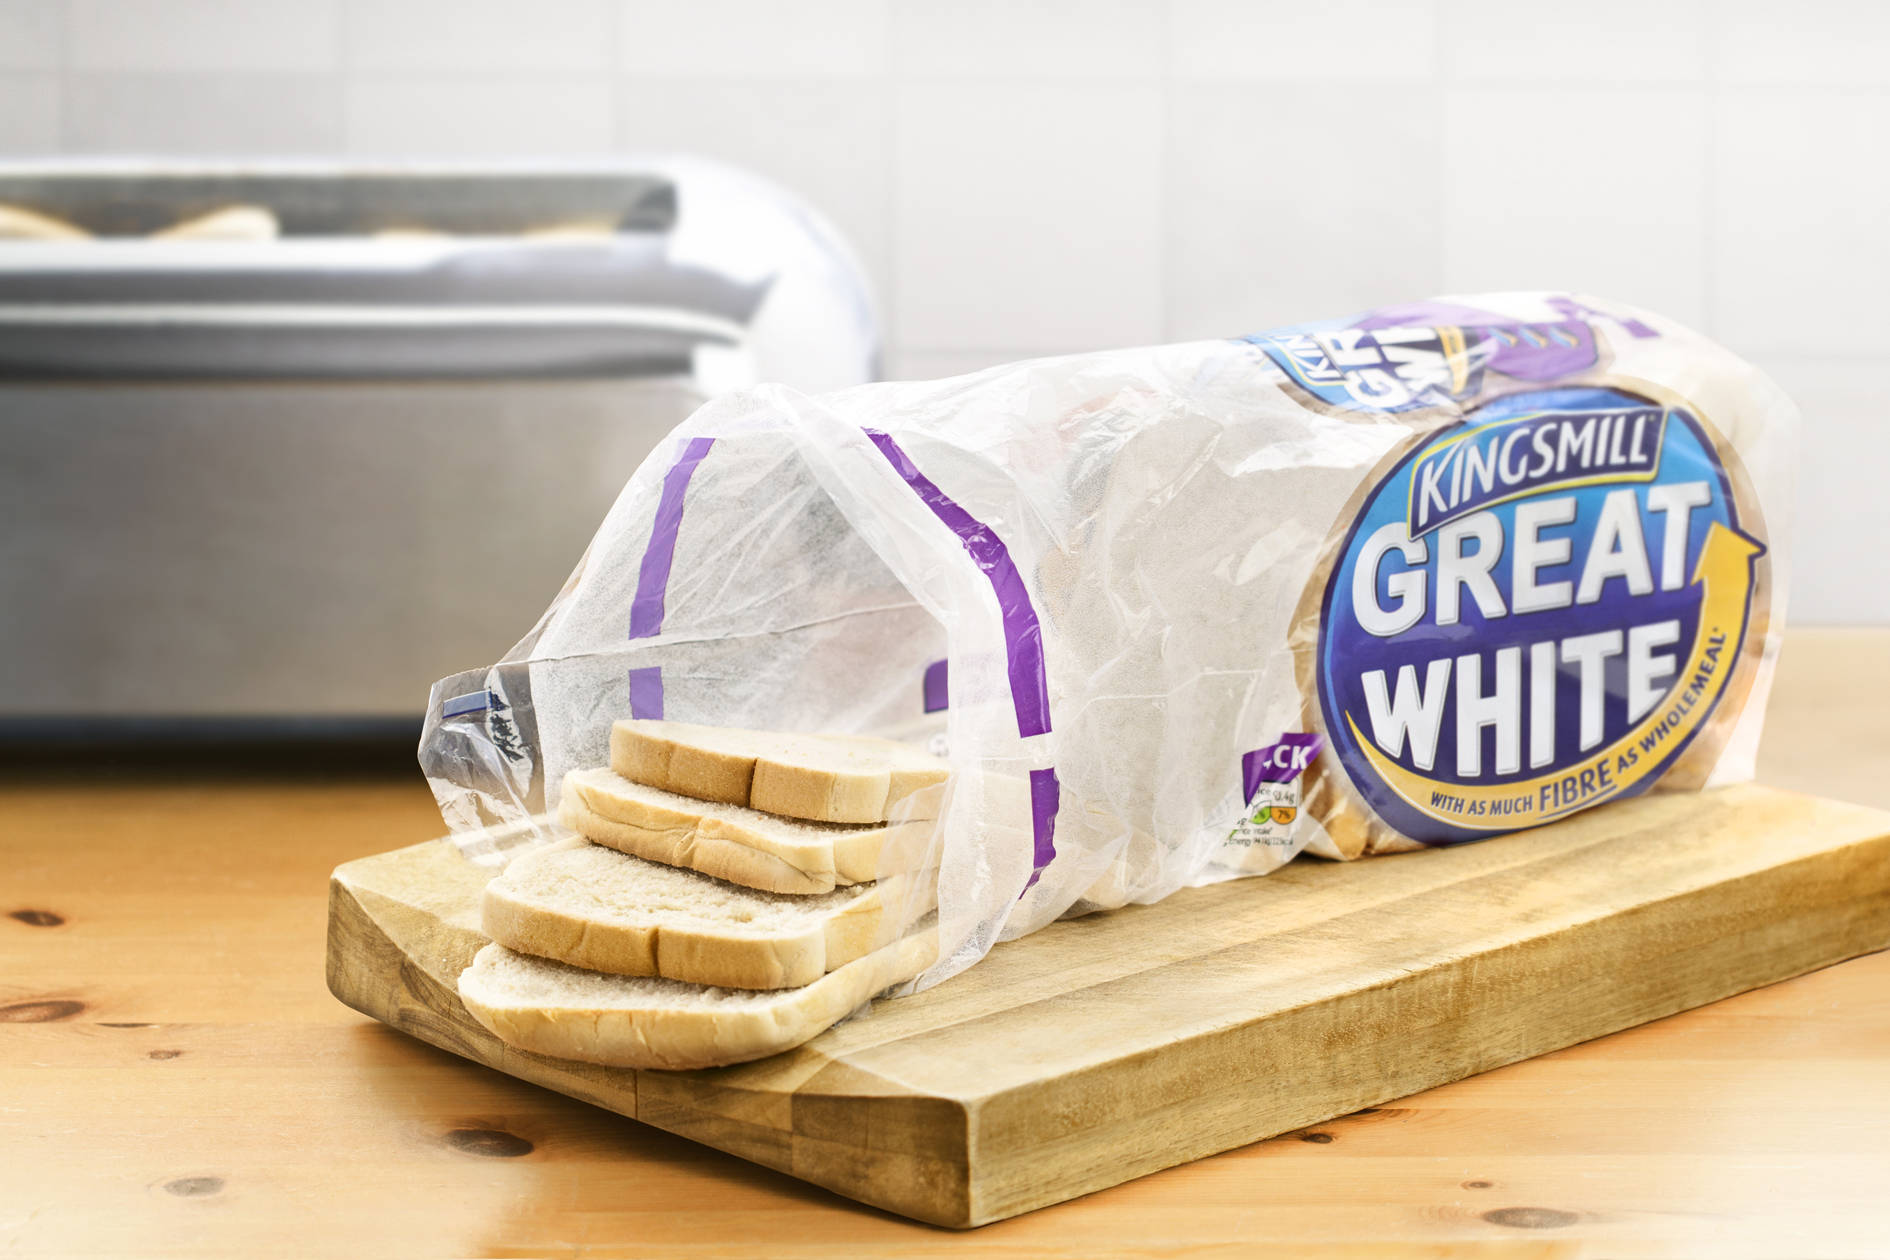 Photo: Kingsmill's Great White bread